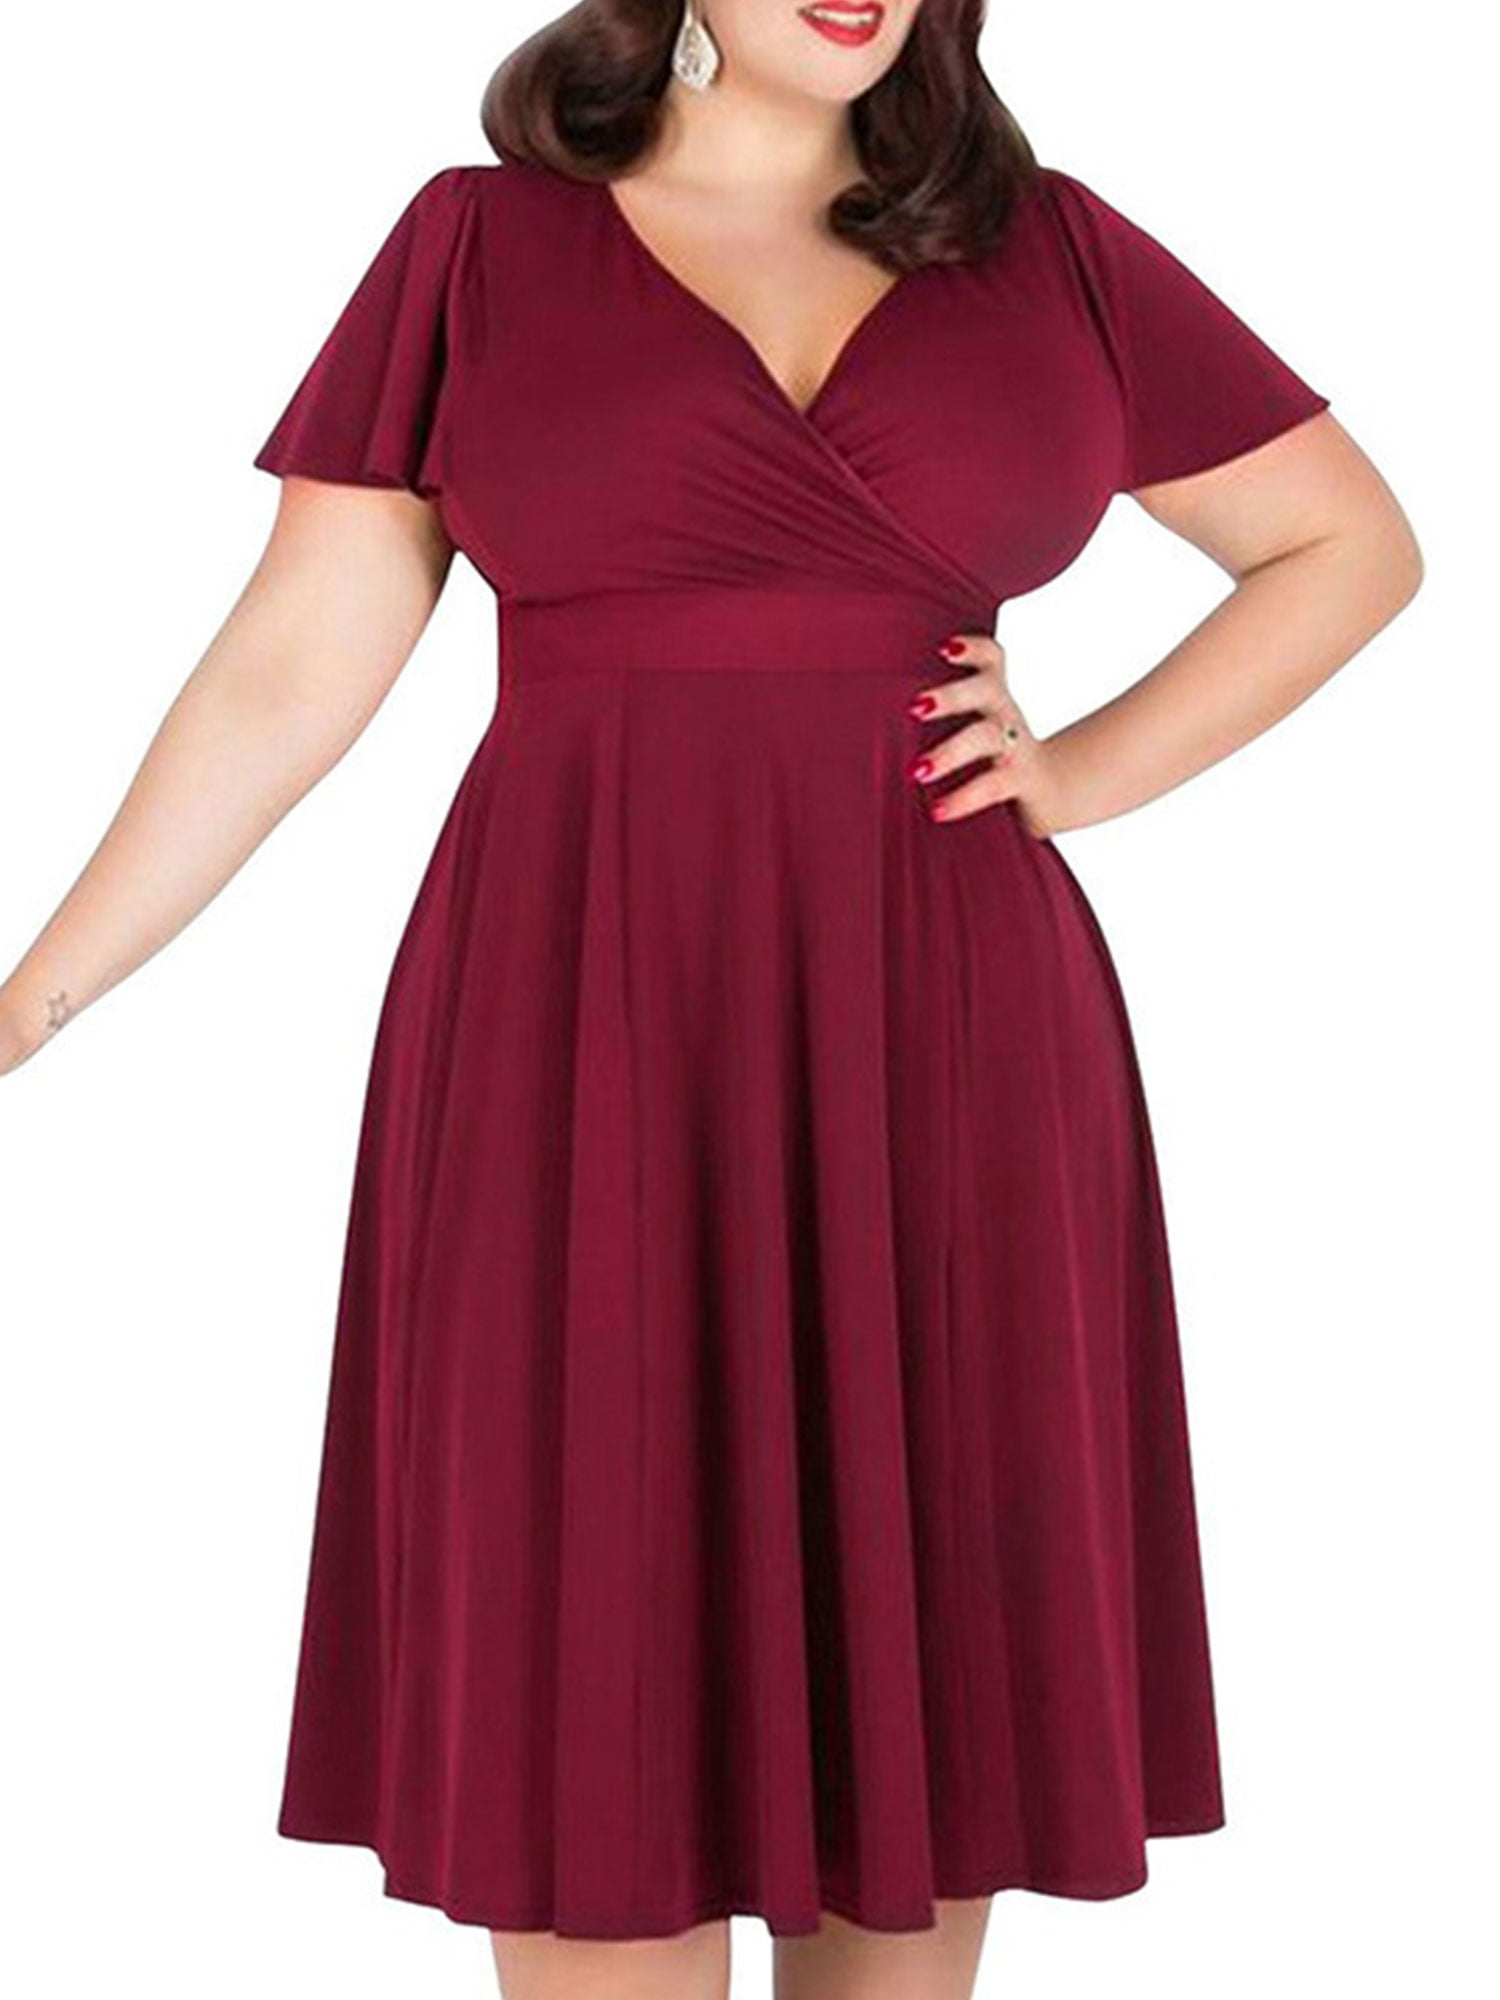 9b1ac3dc38404 Fashion Women Big Plus Size Dress Sexy Ladies V-neck Burgundy Bubble Skirt  XL XXL 3XL 4XL 5XL Size12 16 18 20 22 - Walmart.com